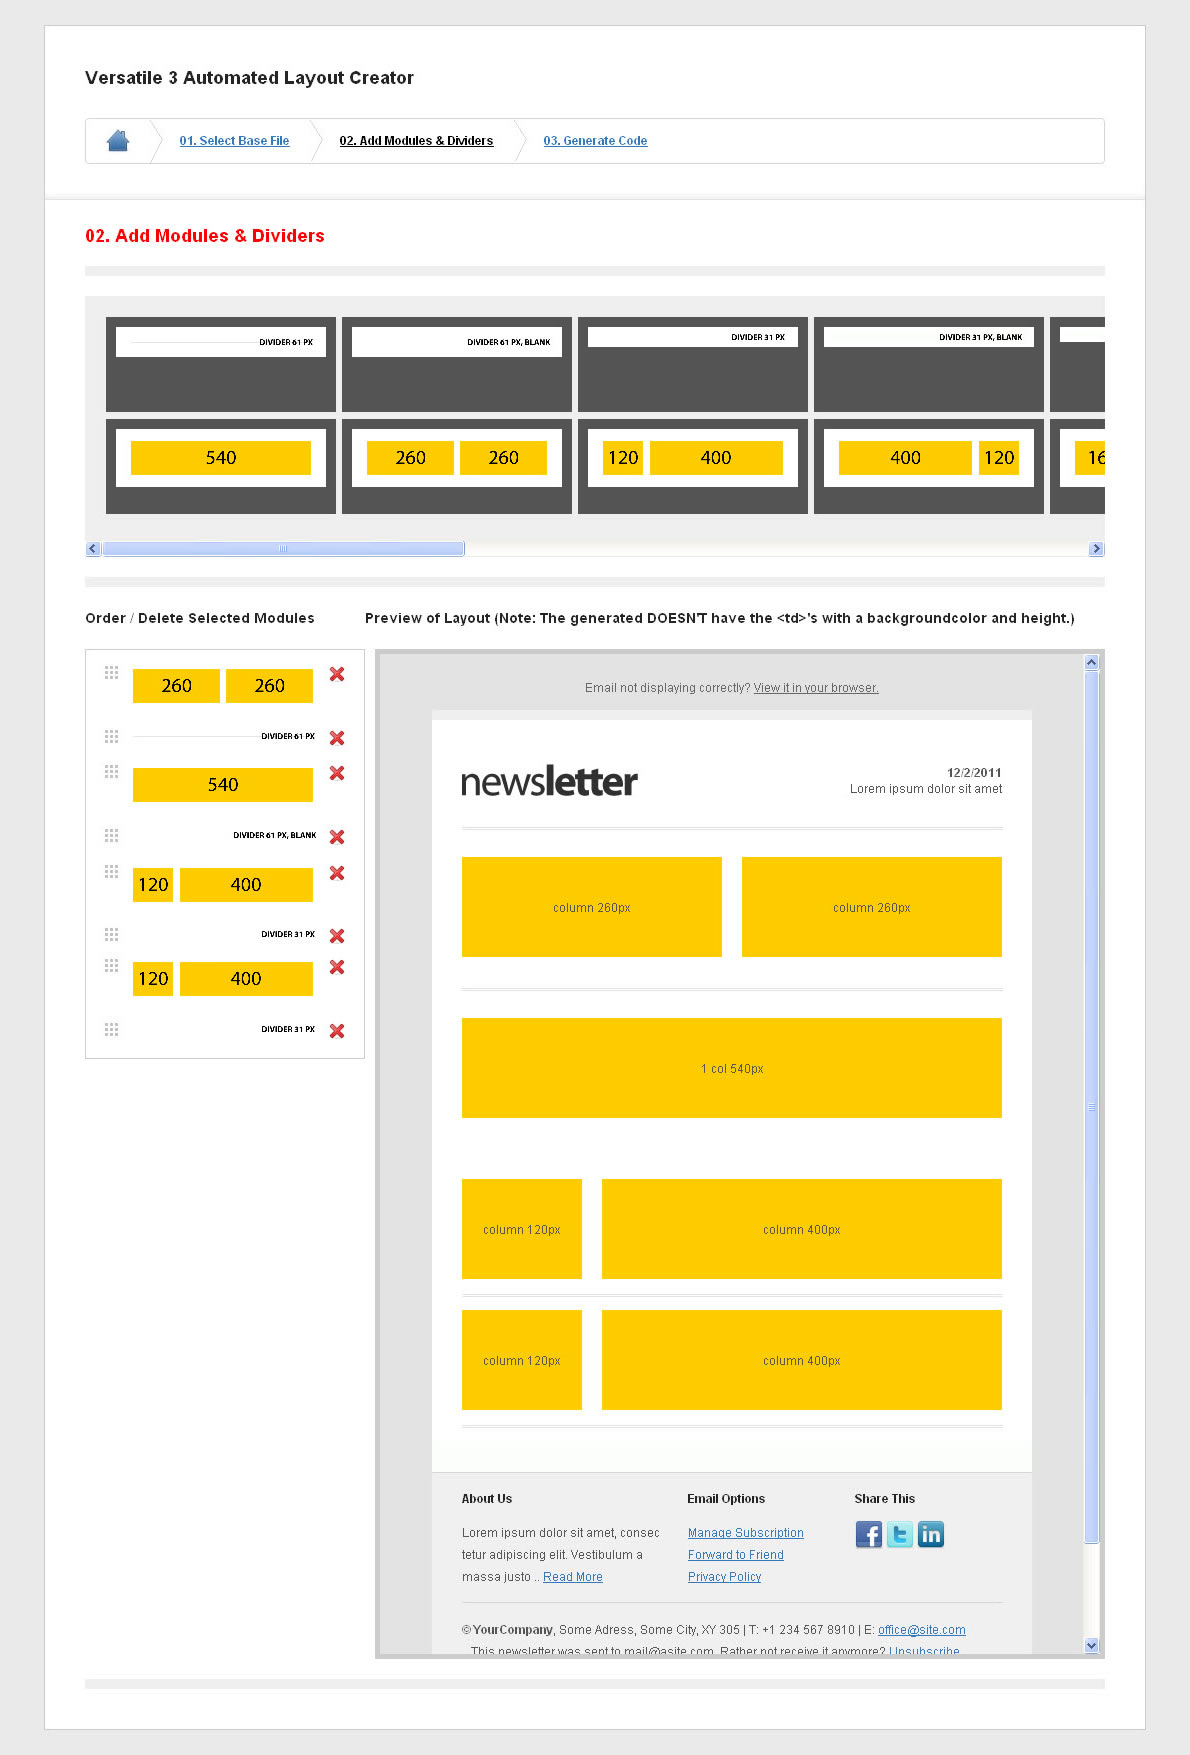 Versatile Newsletter 3 - automated layout creator!